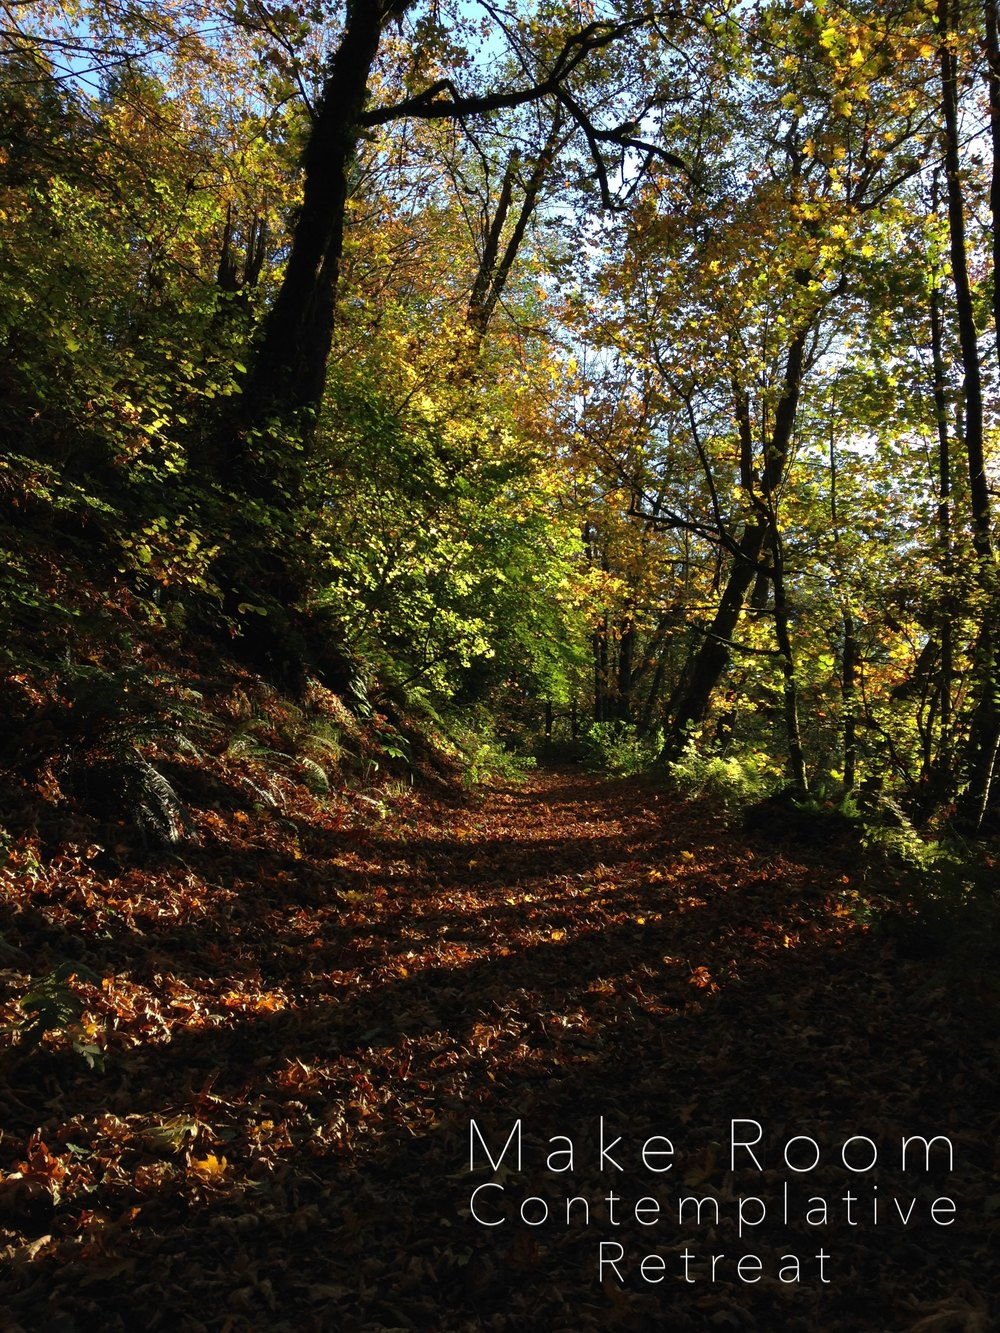 January 23-25 Make Room: A Contemplative Retreat at Koinonia Camp Grounds near Santa Cruz You're invited. Email me at josh@valleylife.org.